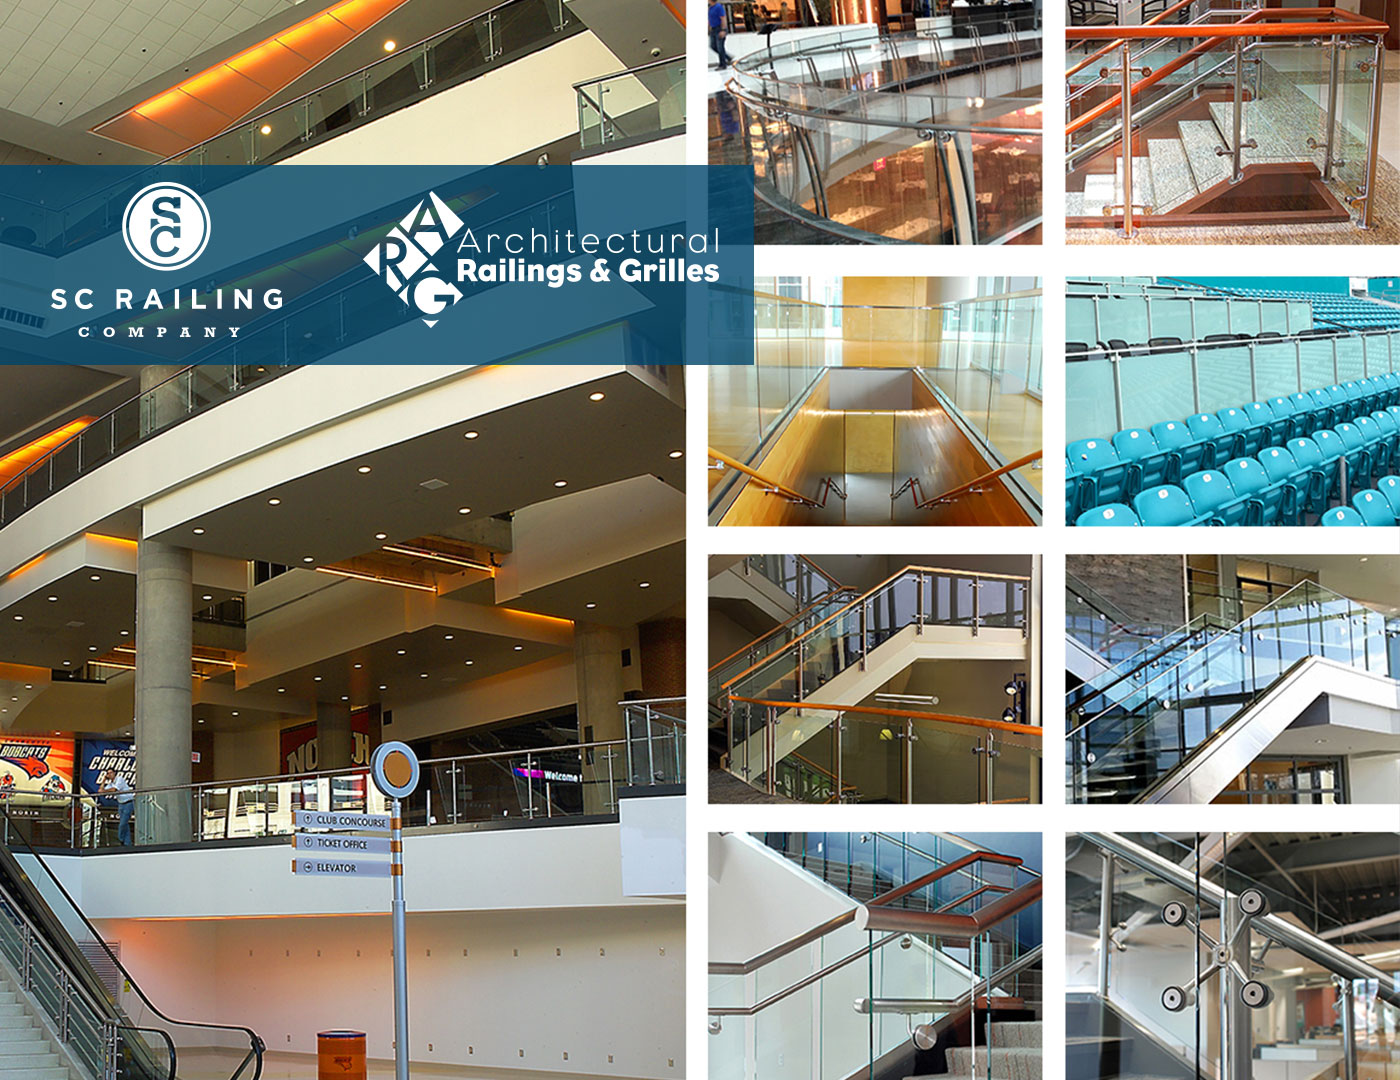 SC Railing Company Announces Acquisition of Architectural Railings & Grilles